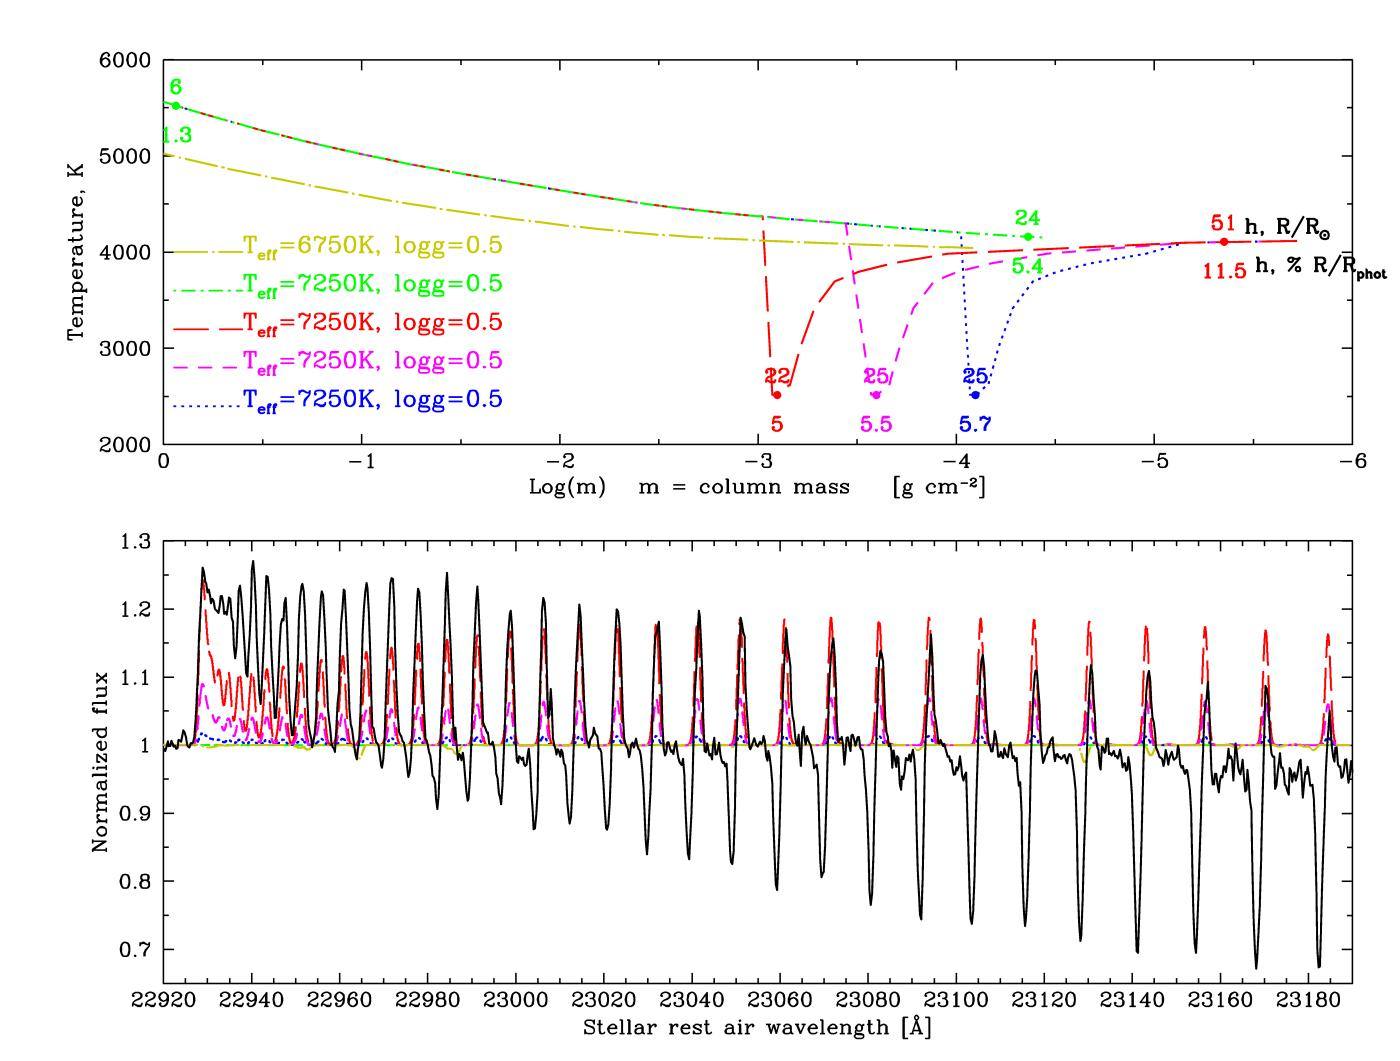 CO emission shock in Rho Cas